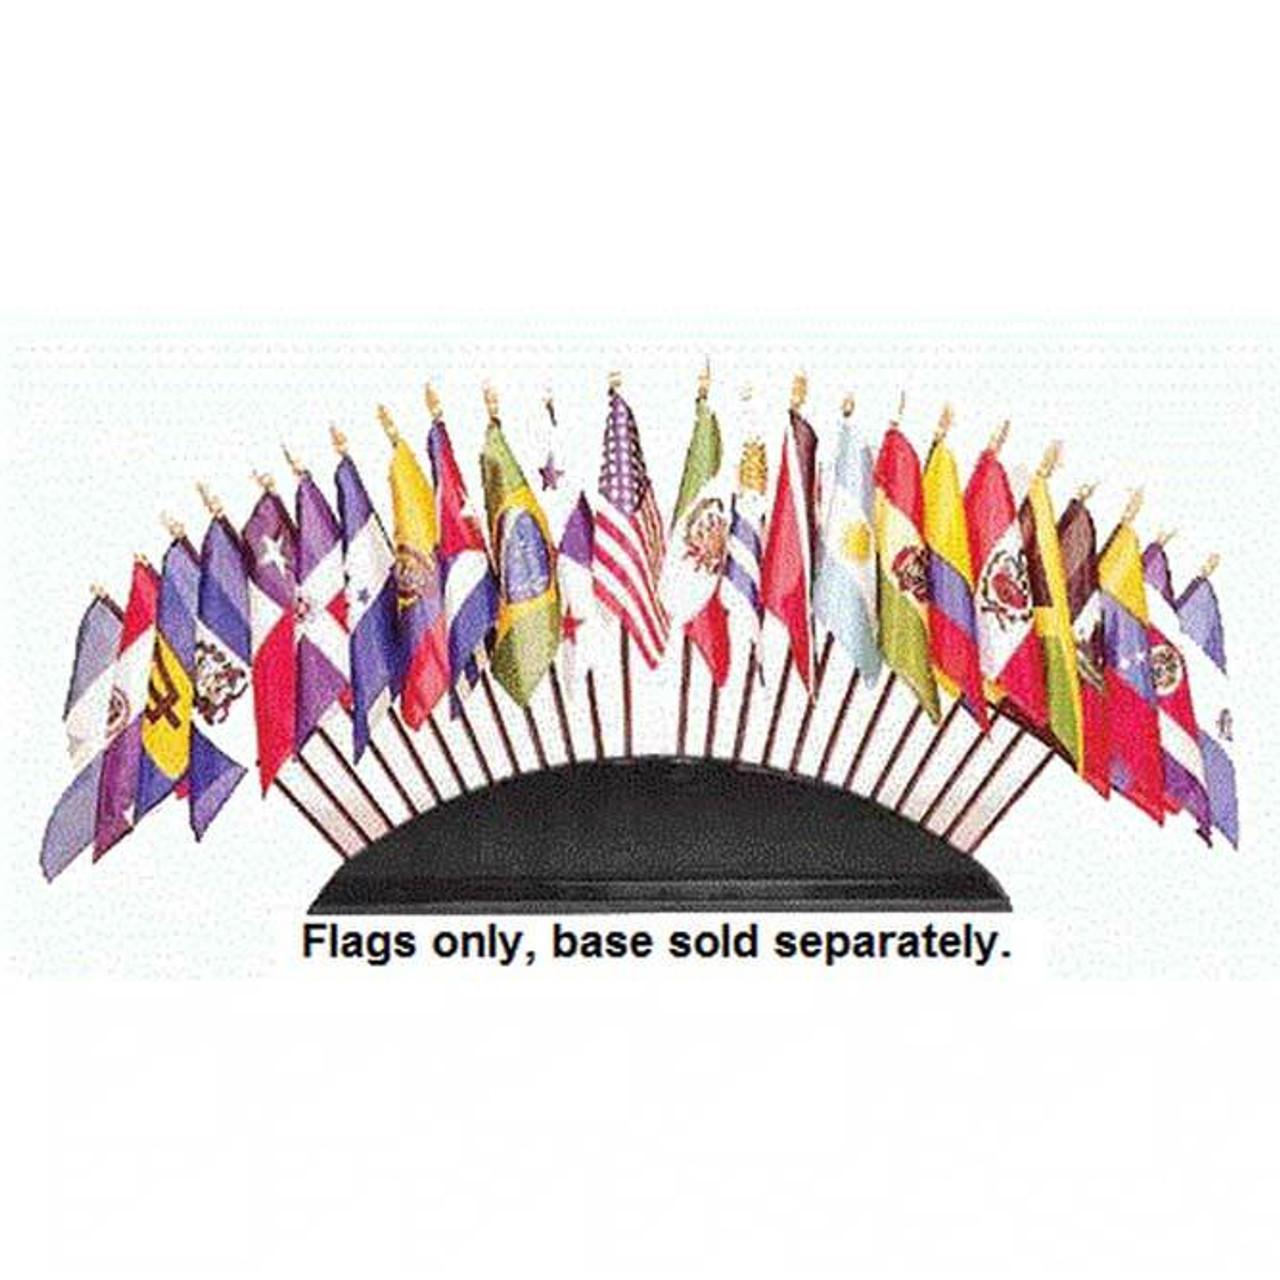 Complete Set of Organization of American States Stick Flags